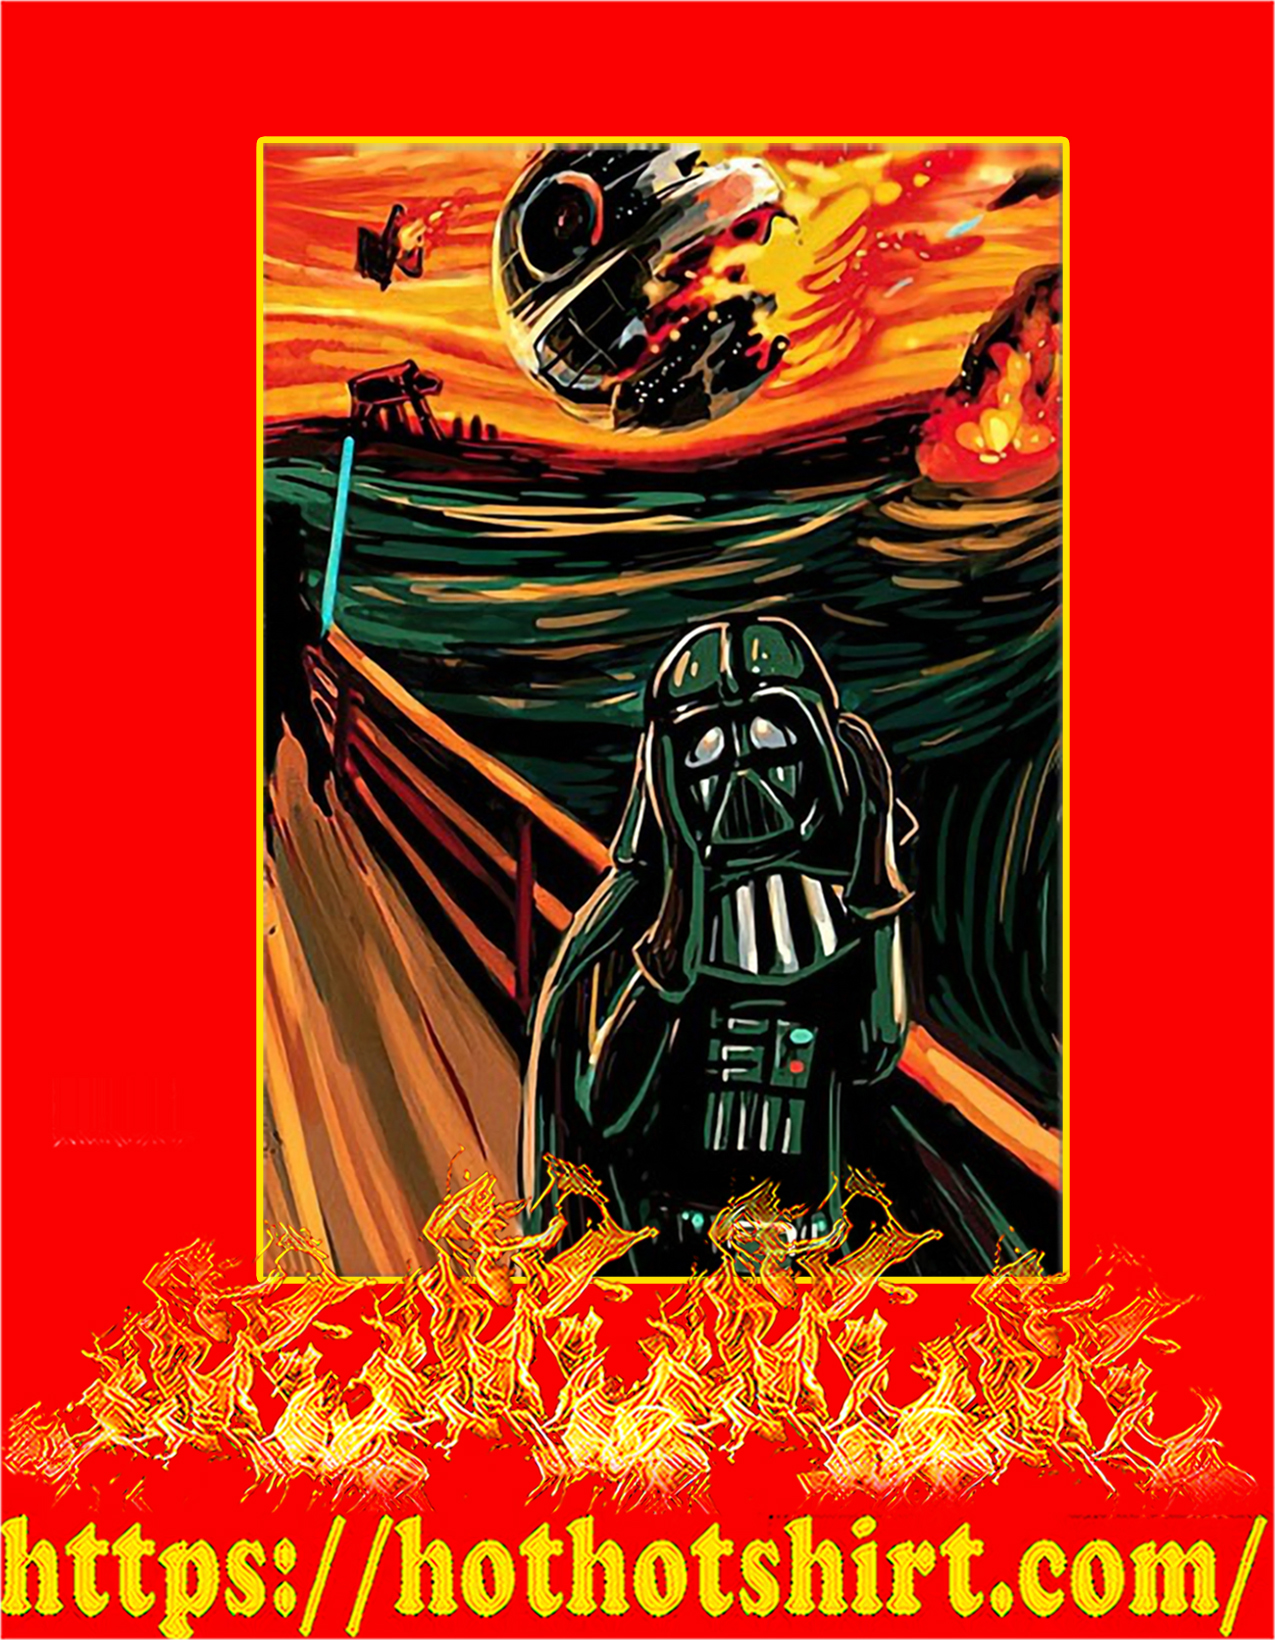 Star Wars The Vader Scream Poster - A2